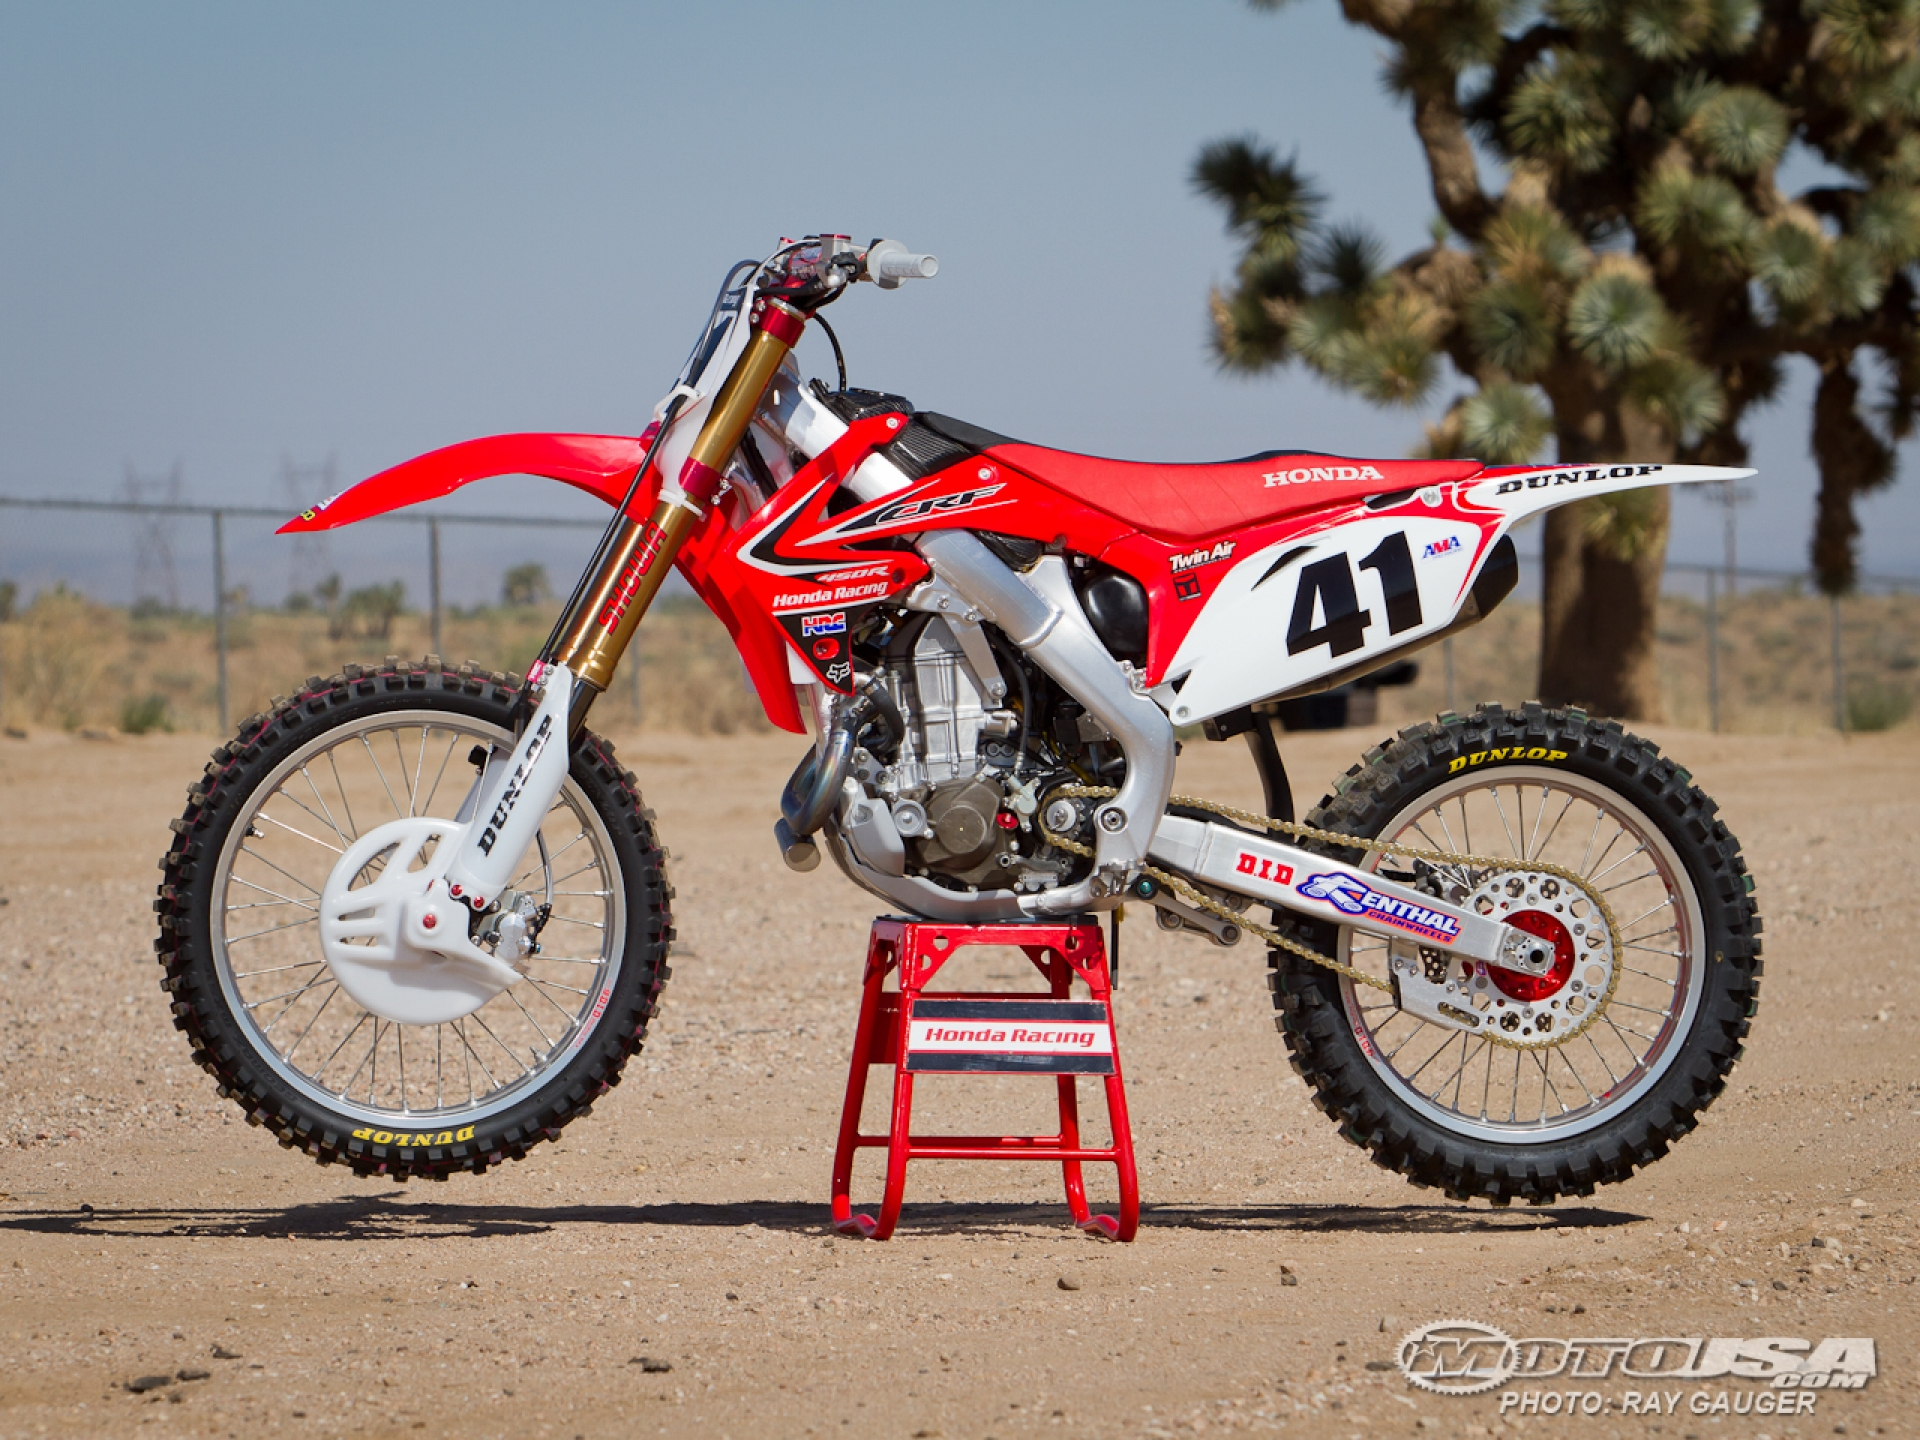 Crf450r factory motocross bike test picture 9 of 22 motorcycle usa HD Wallpaper